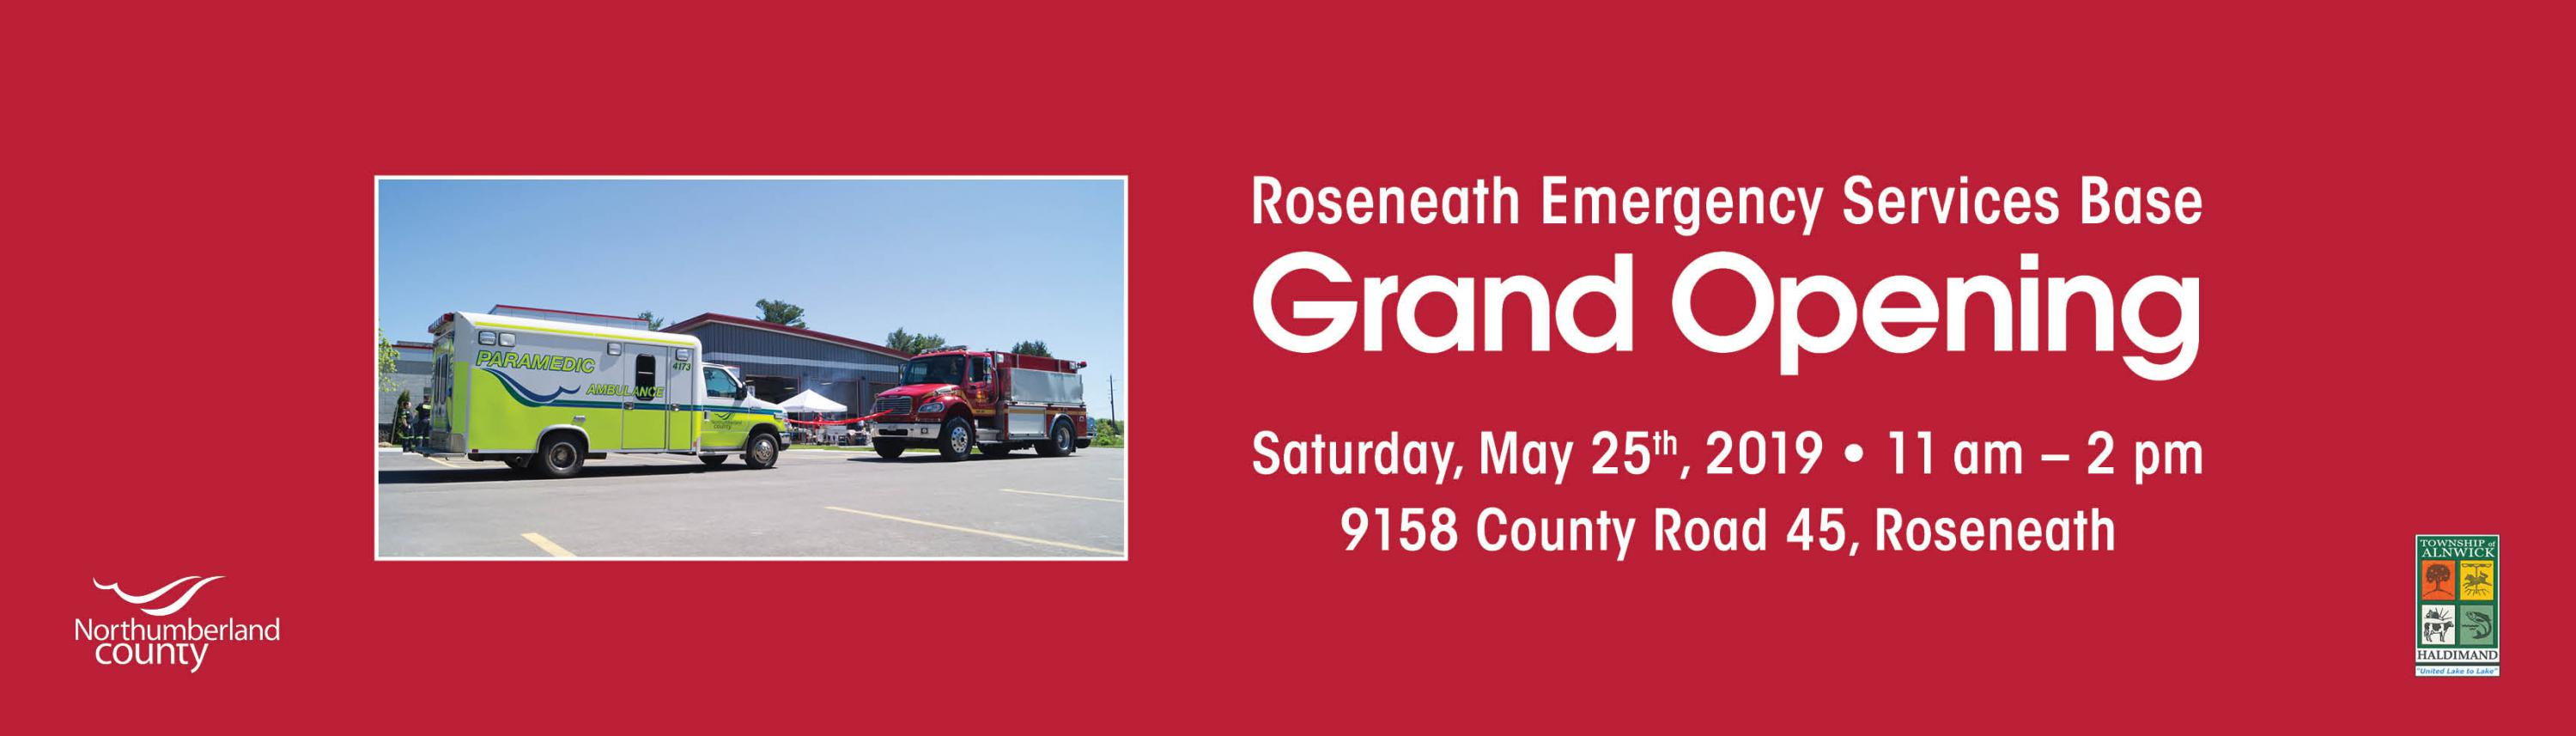 Roseneath Emergency Services Base Grand Opening Ceremonies